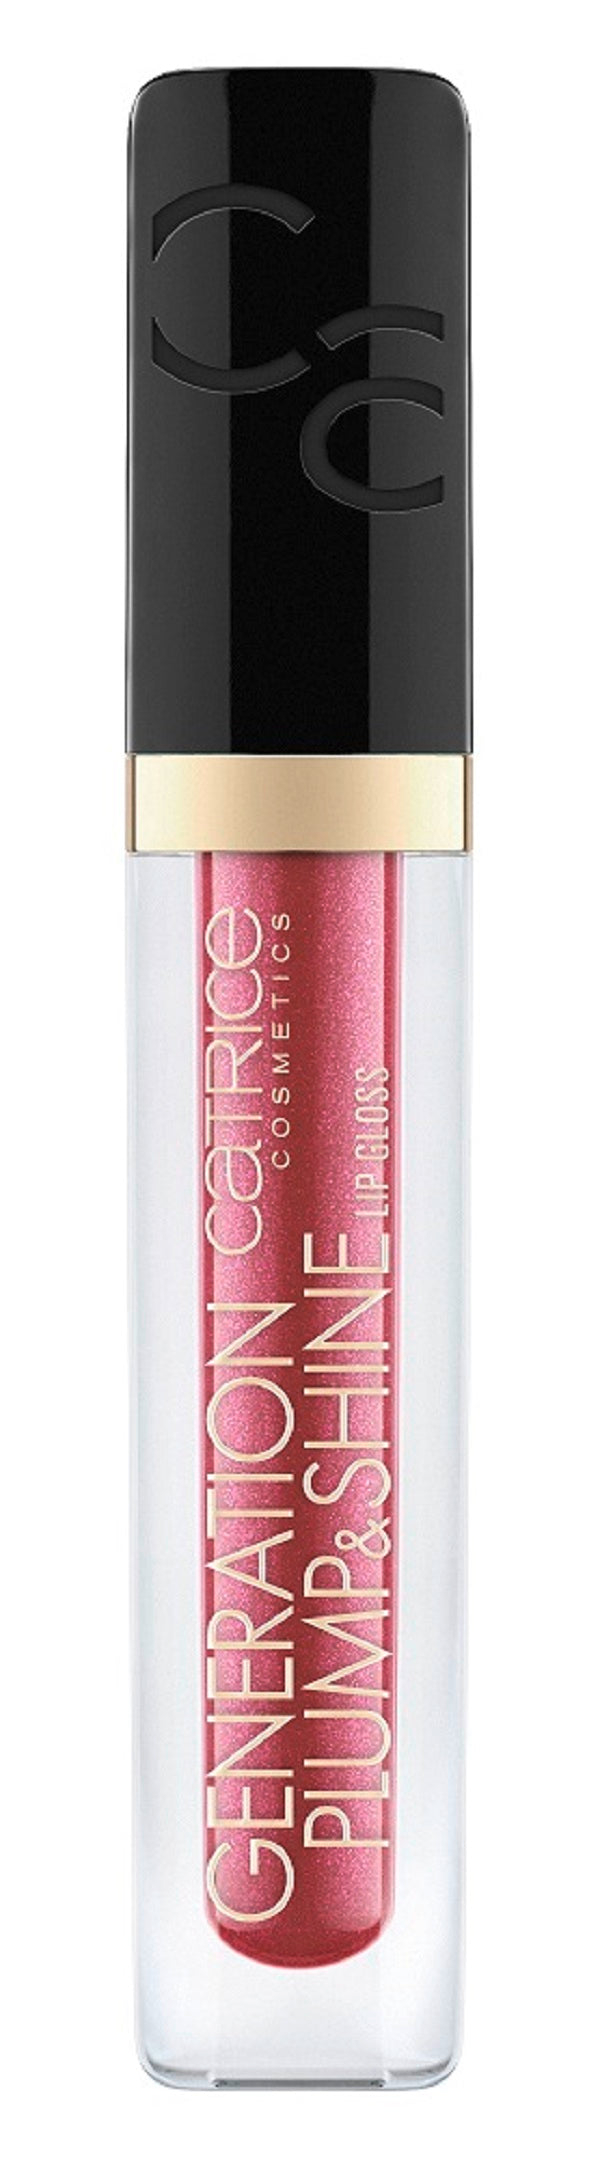 Catrice Generation Plump & Shine Lip Gloss 110-Shiny Garnet